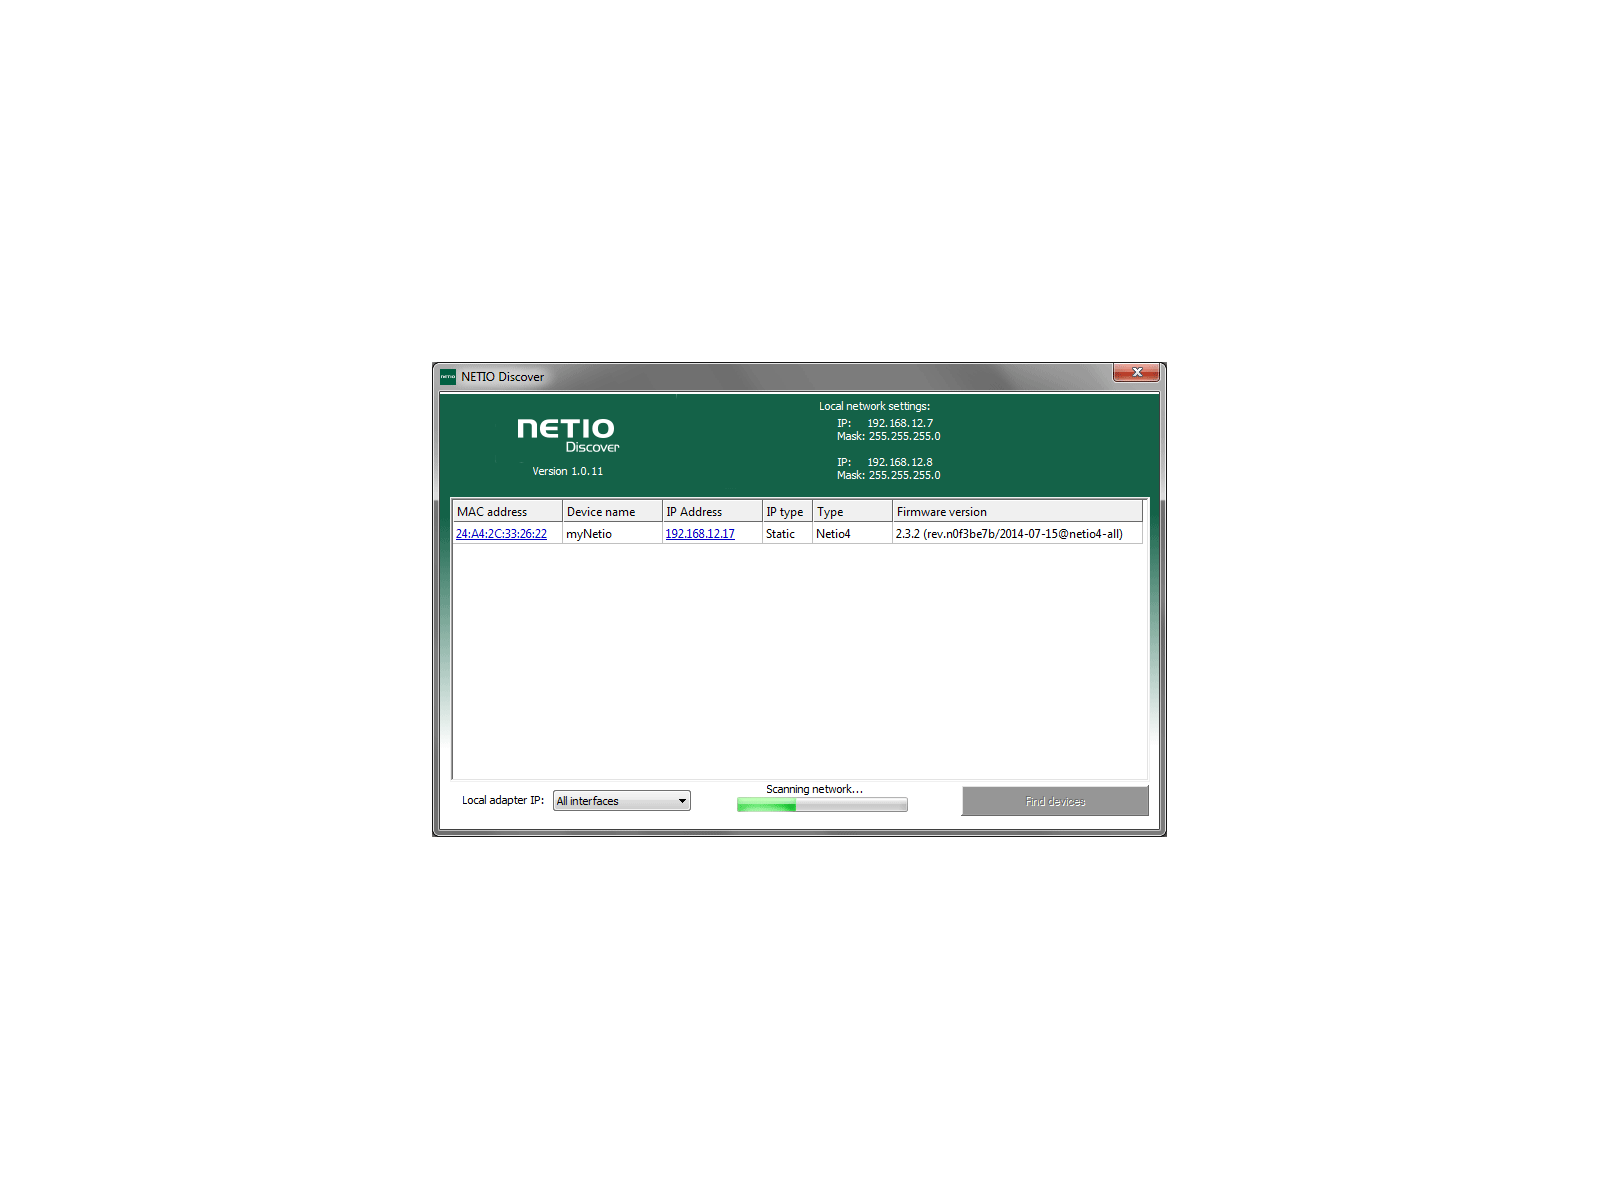 NETIO Discover is screening network to find any networked NETIO device